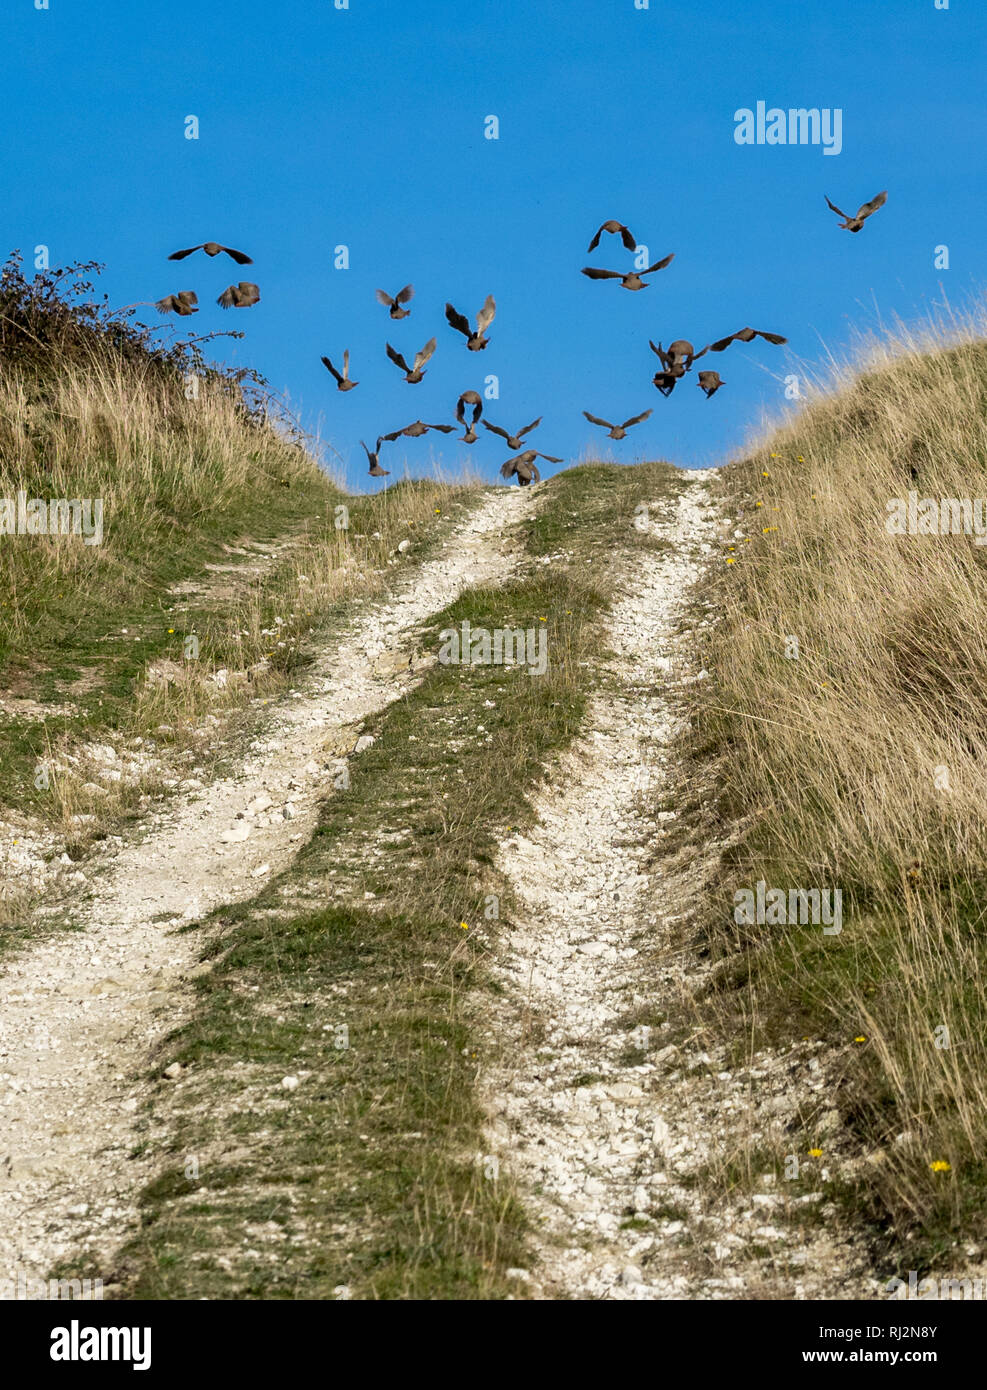 A flock of pheasants taking off escaping from brow of hill  into a clear blue autumn sky with track path road leading into frame, UK - Stock Image